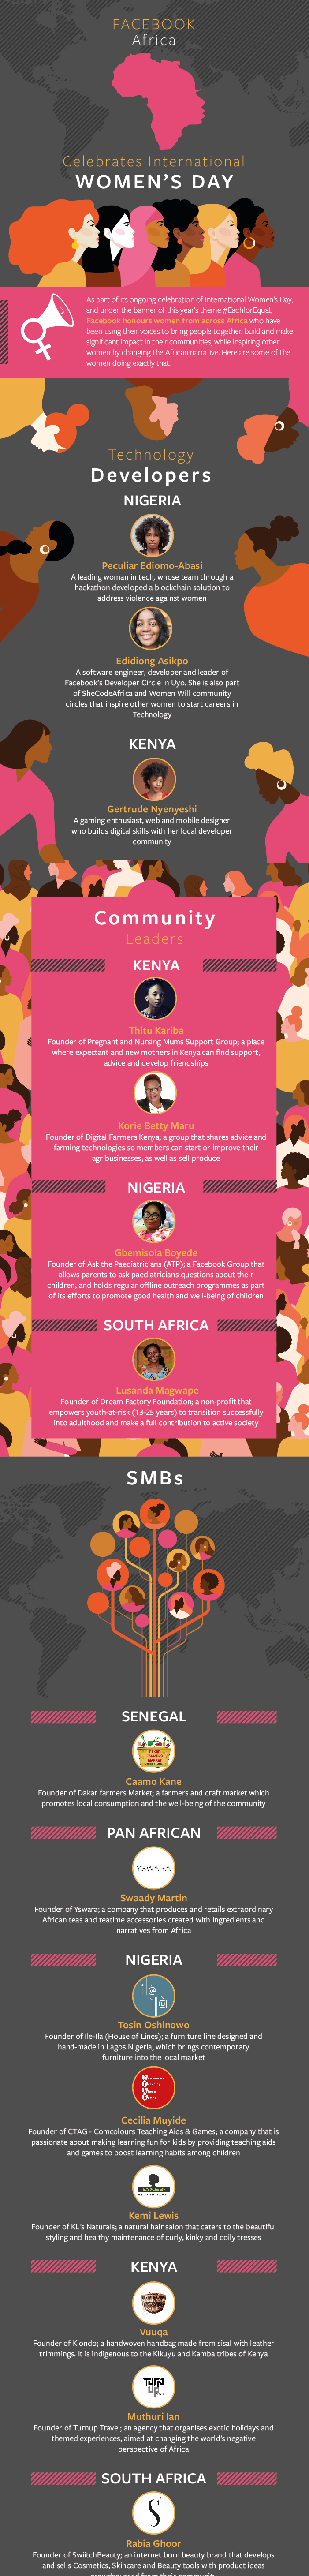 #EachforEqual: Facebook Celebrates Female Achievers across SSA on International Women's Day - Brand Spur